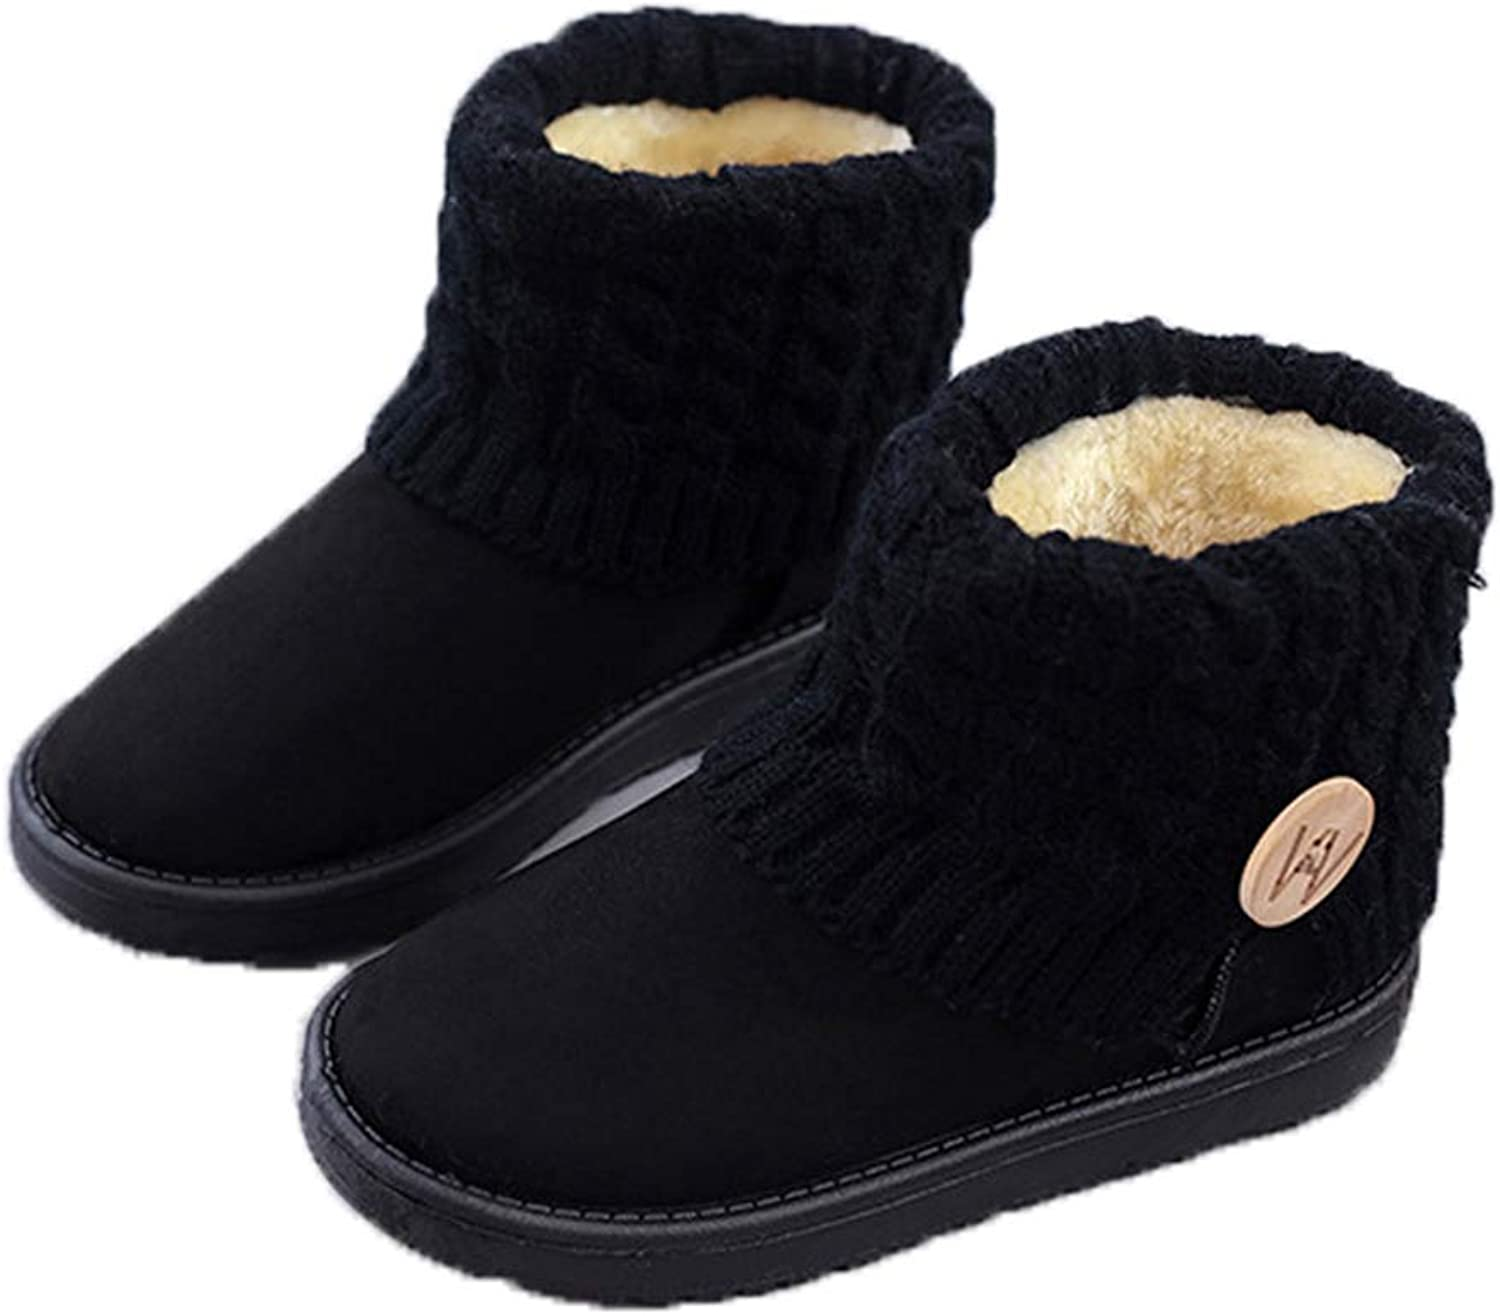 T-JULY Women's Boots Winter Warm Snow Mid Calf Girls Thick Plush Flock shoes